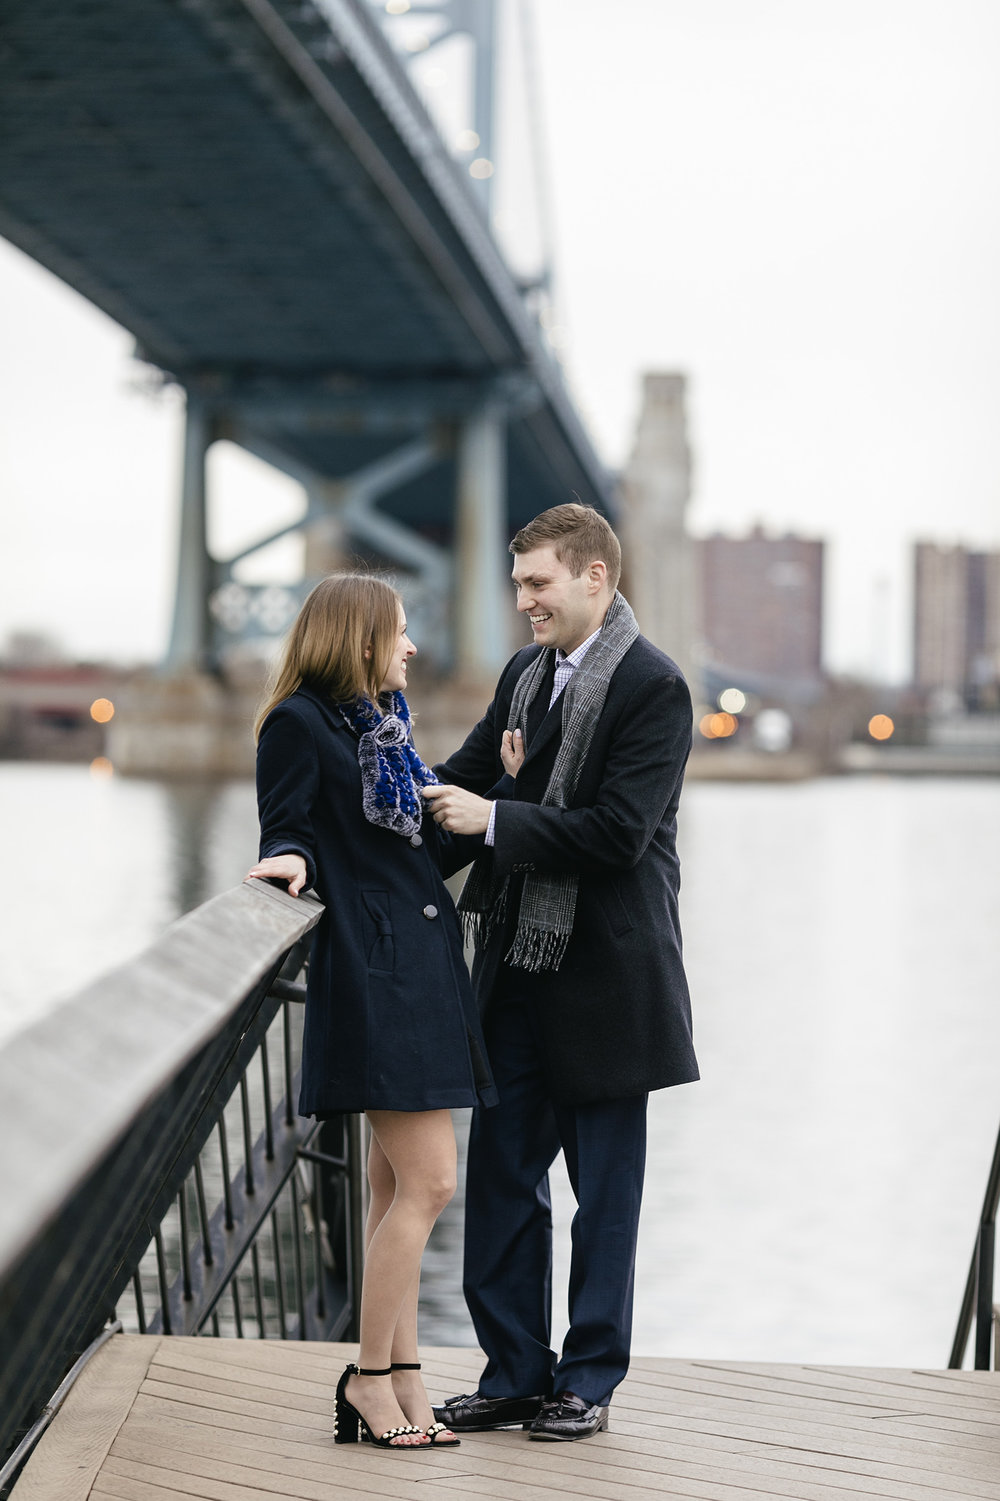 philadelphia_proposal_engagement_race street pier_km_13.JPG